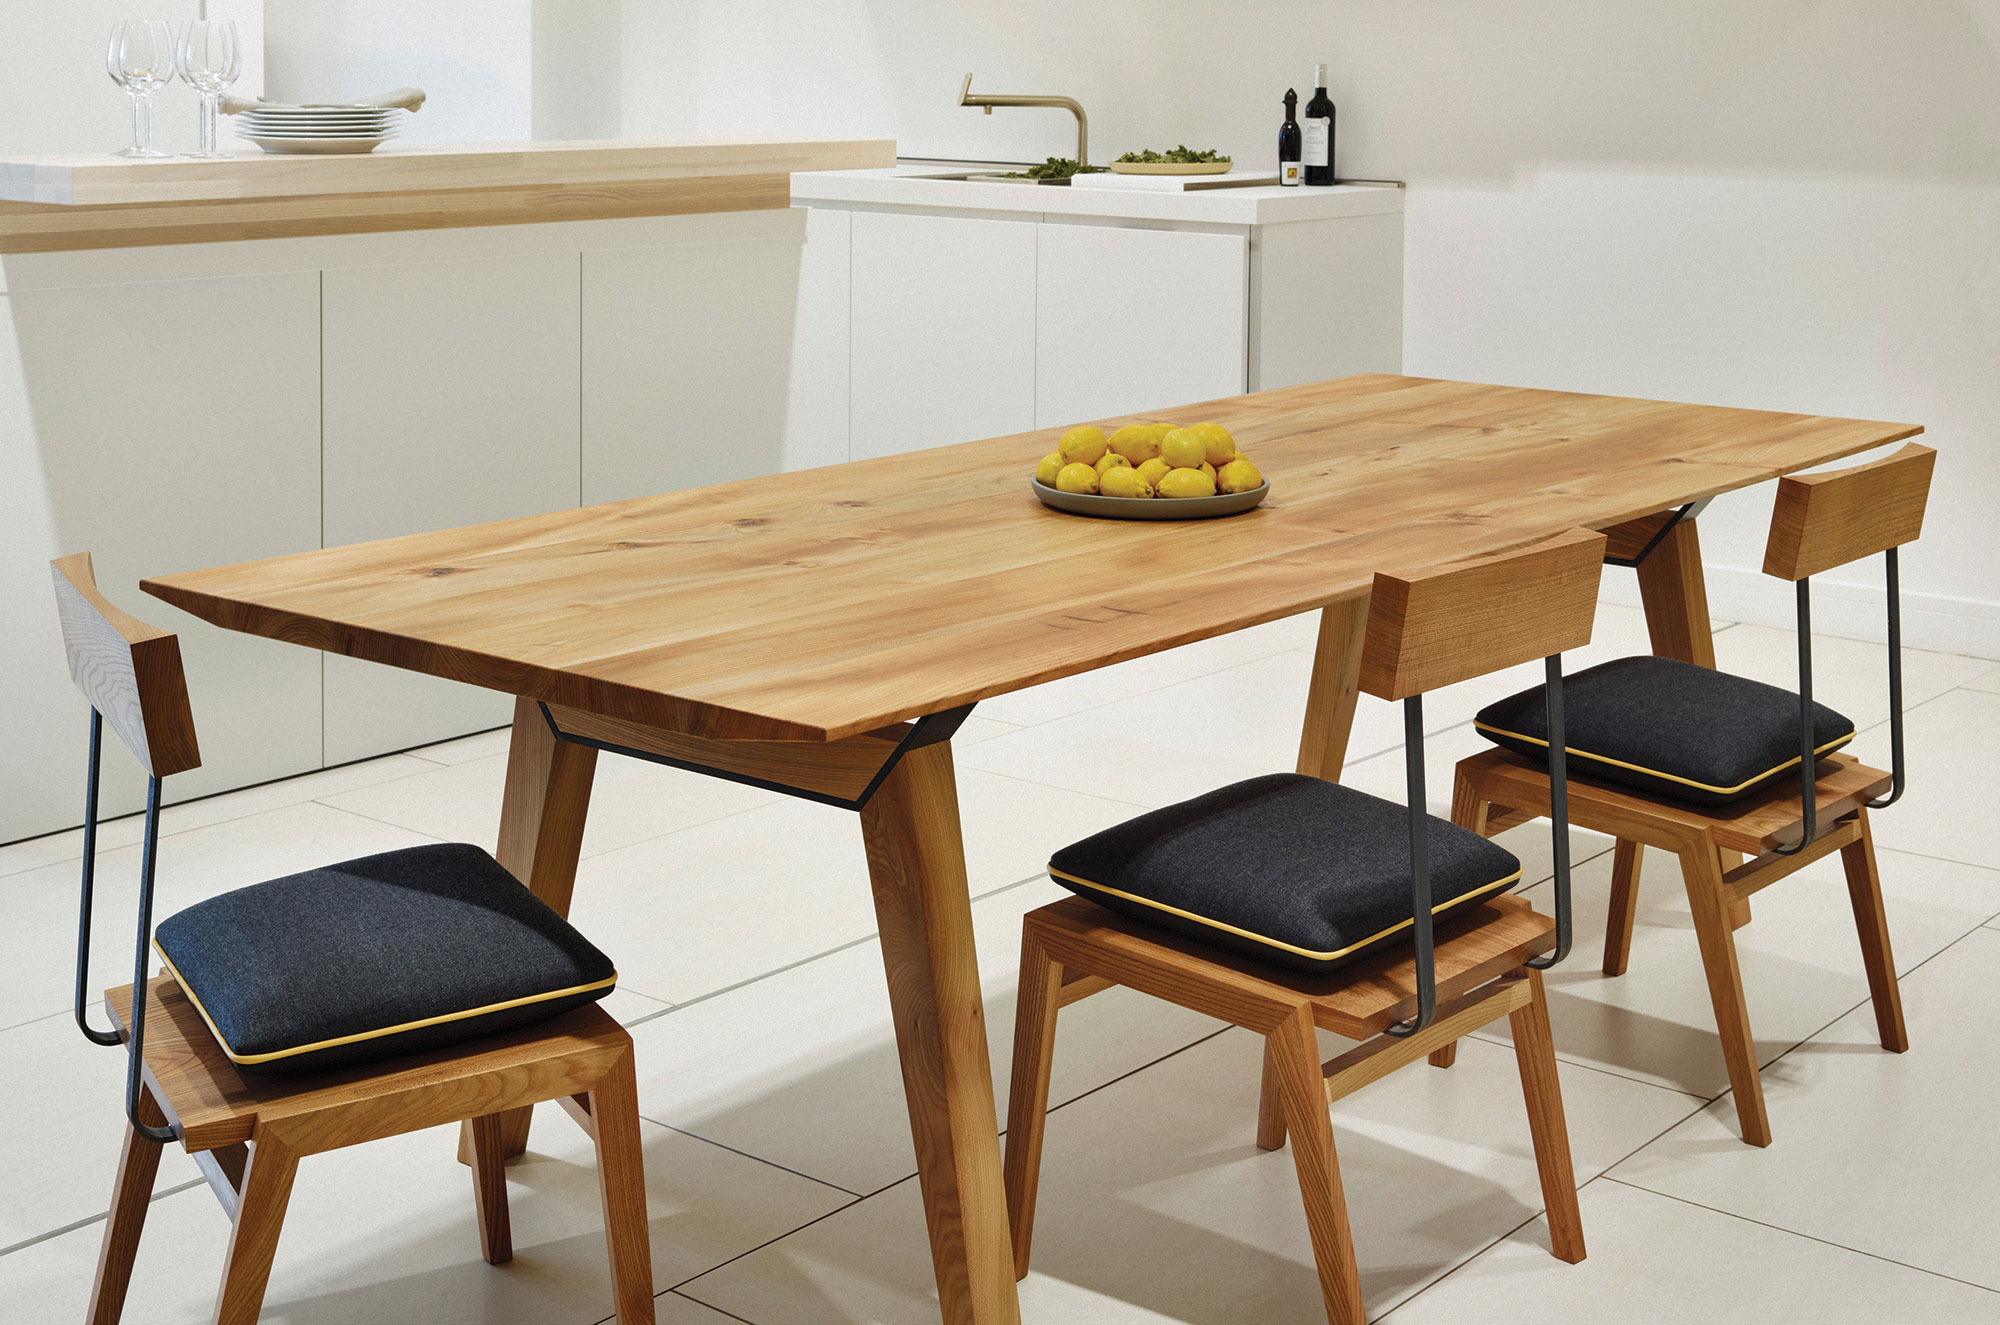 Dining tables and chairs are designed and made in our workshop in Bristol